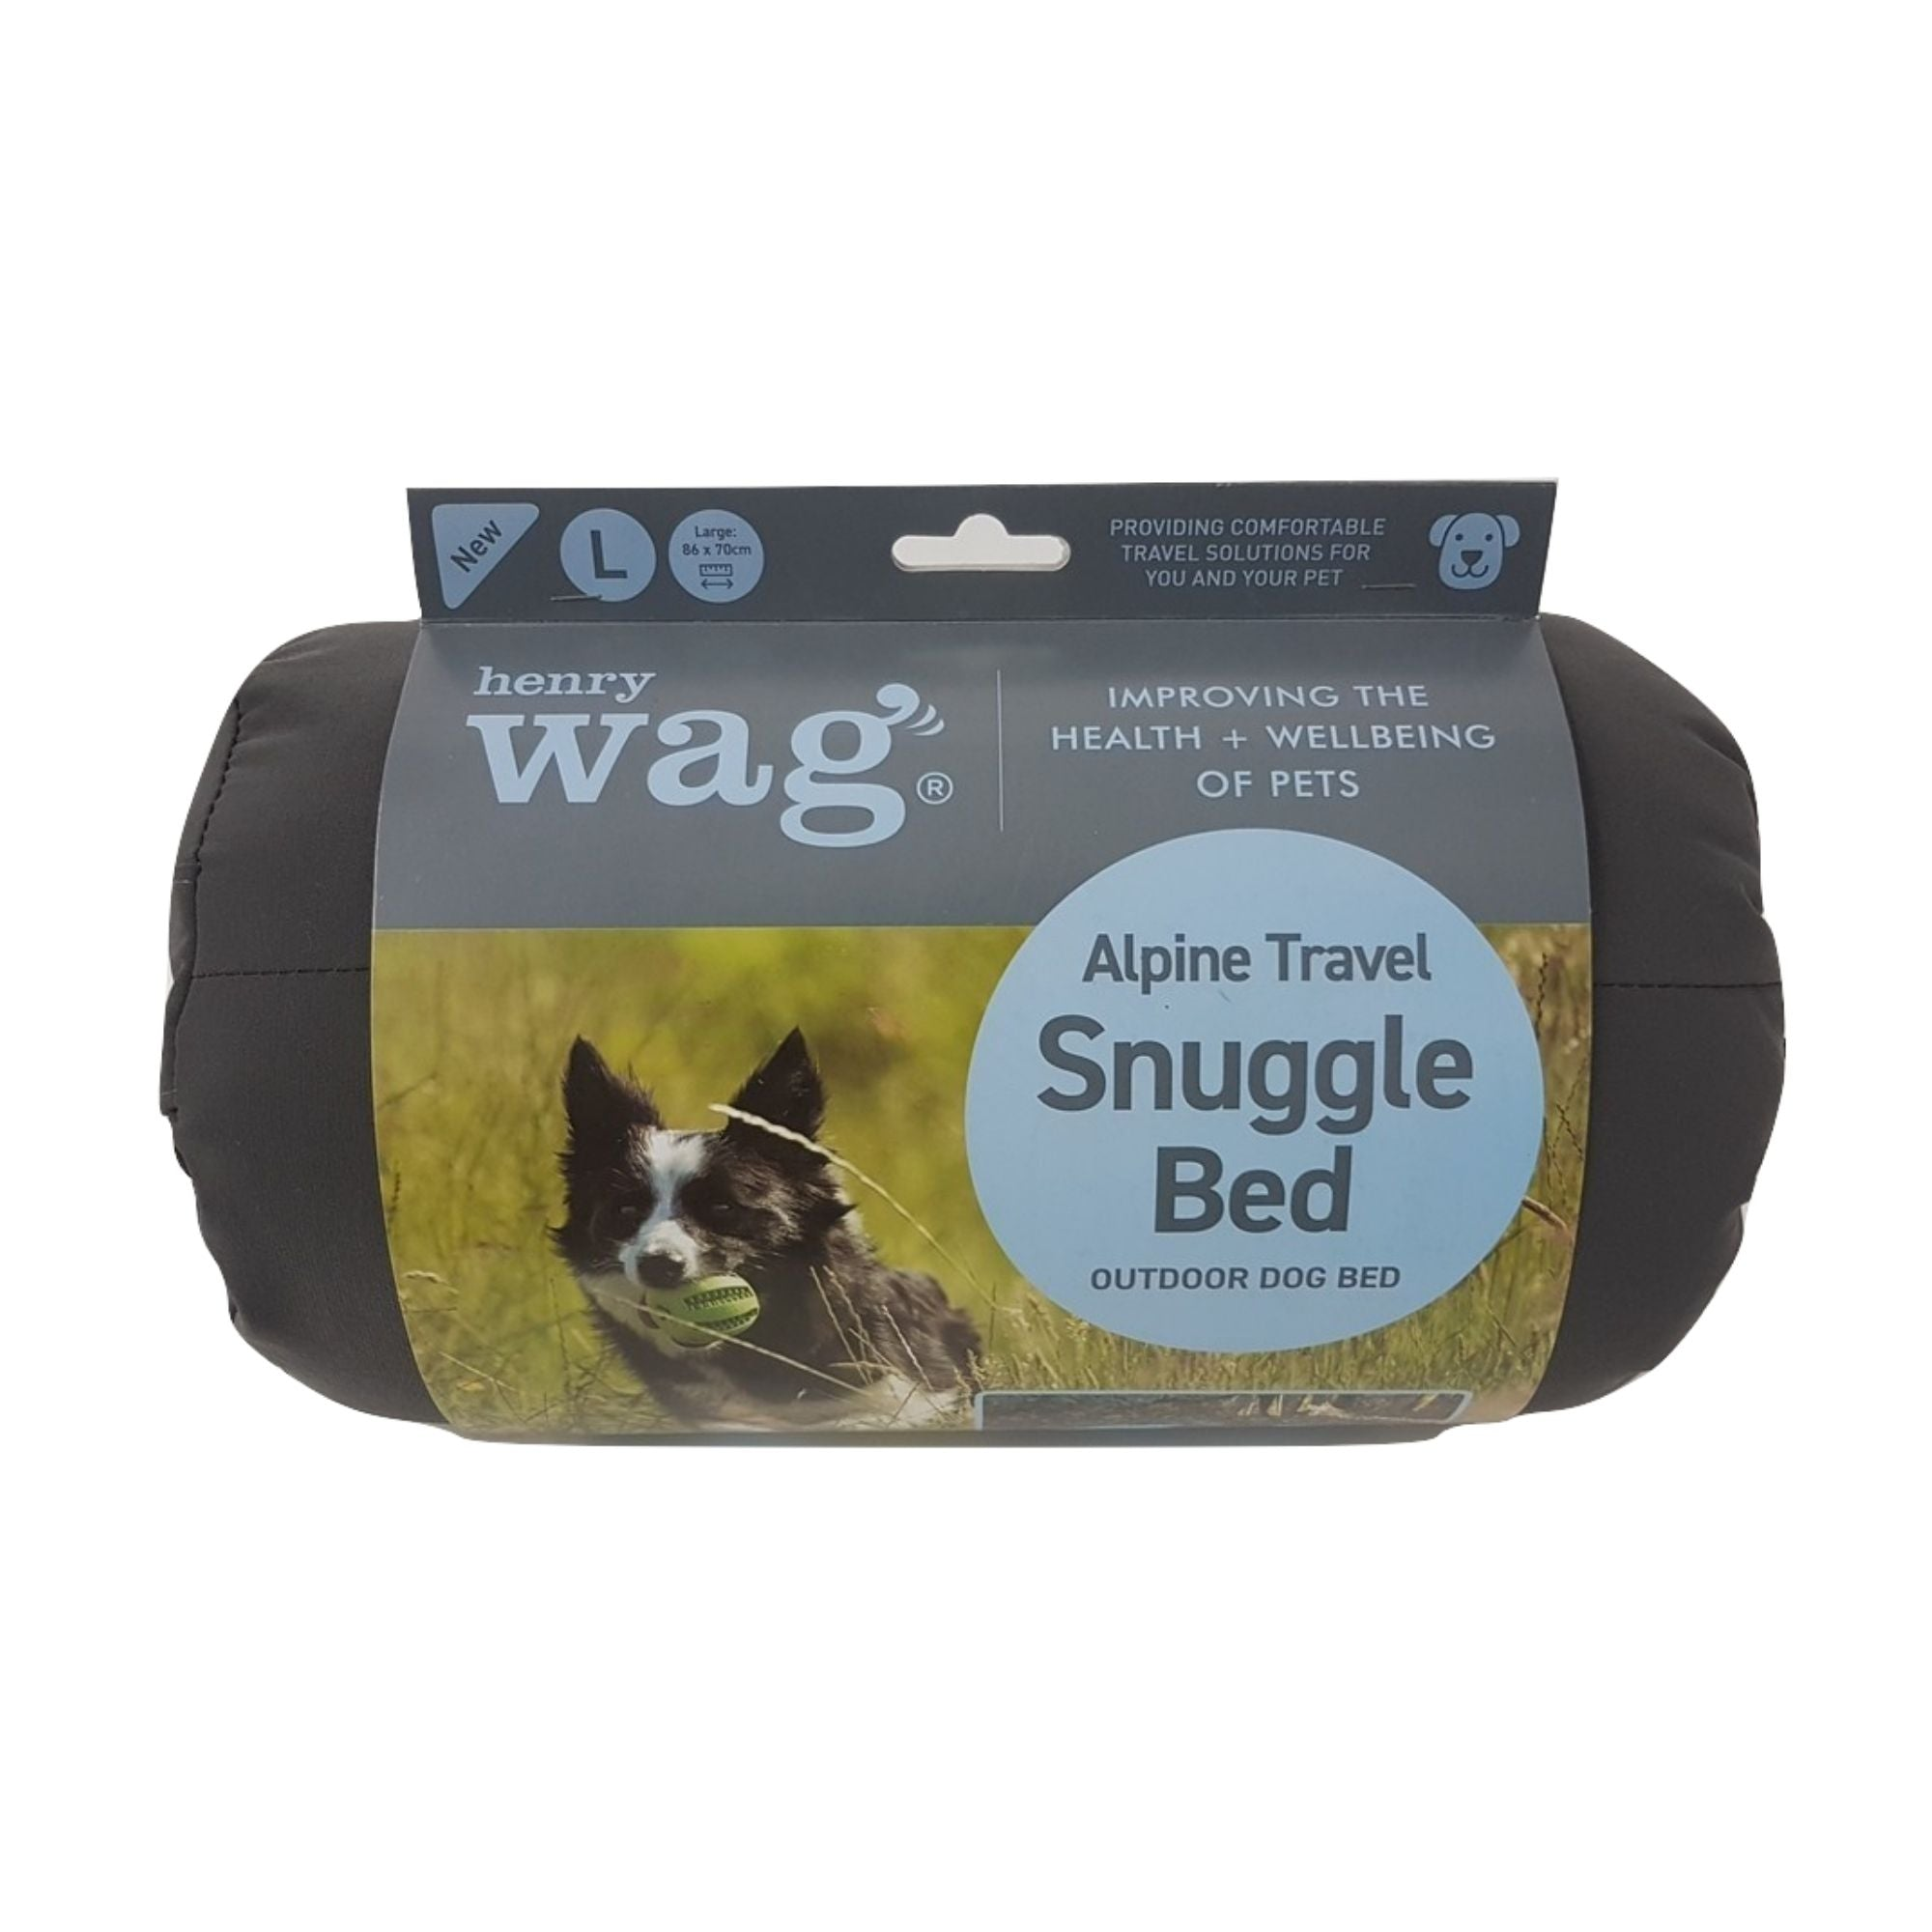 Alpine Travel Snuggle Bed